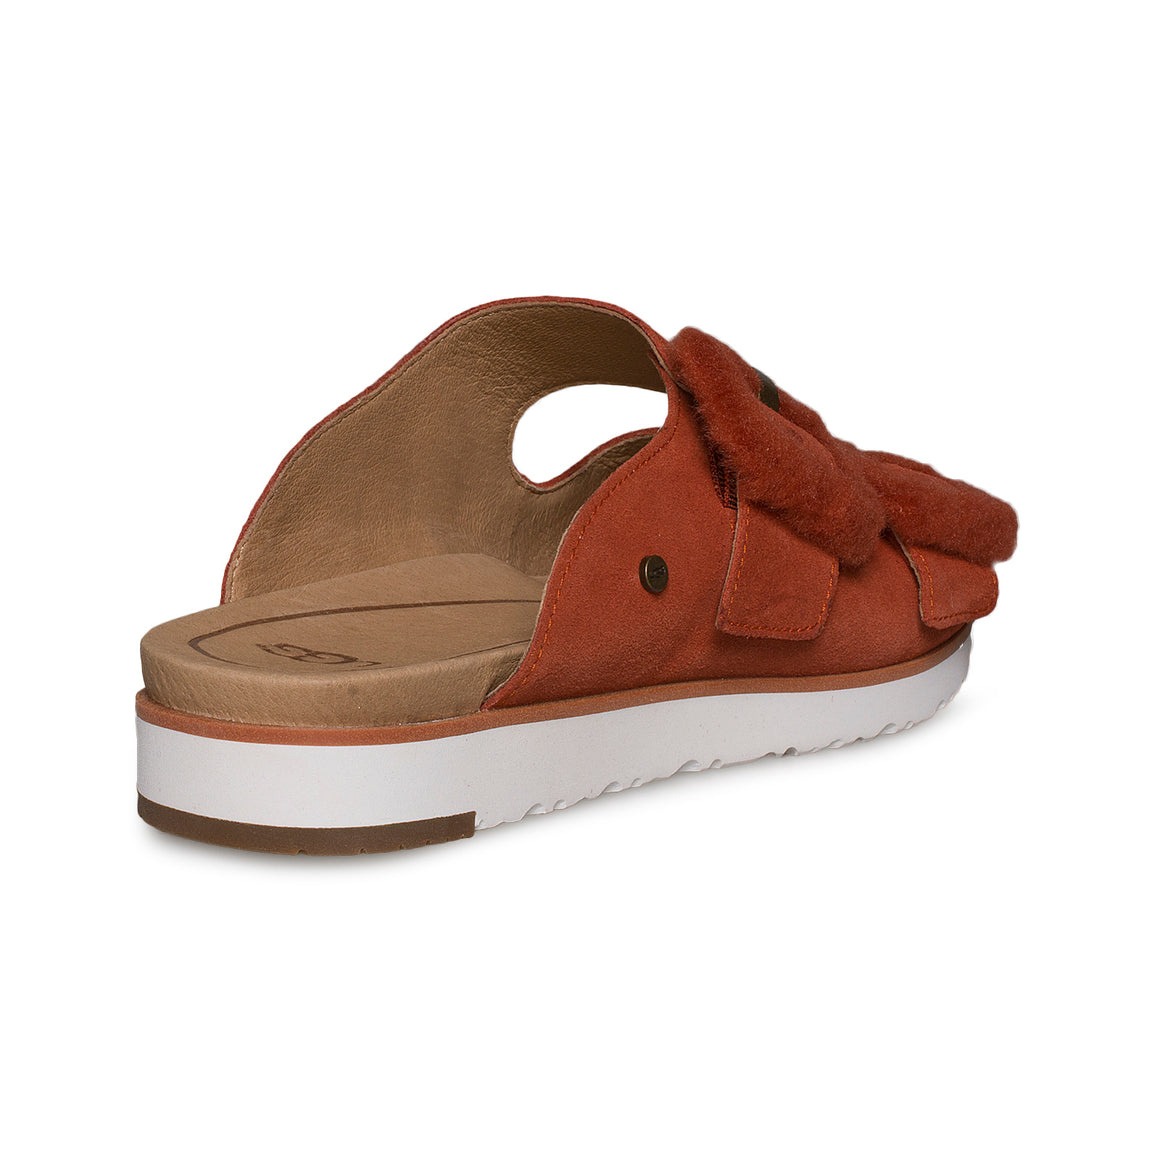 UGG Fluff Indio Red Rock Sandals - Women's